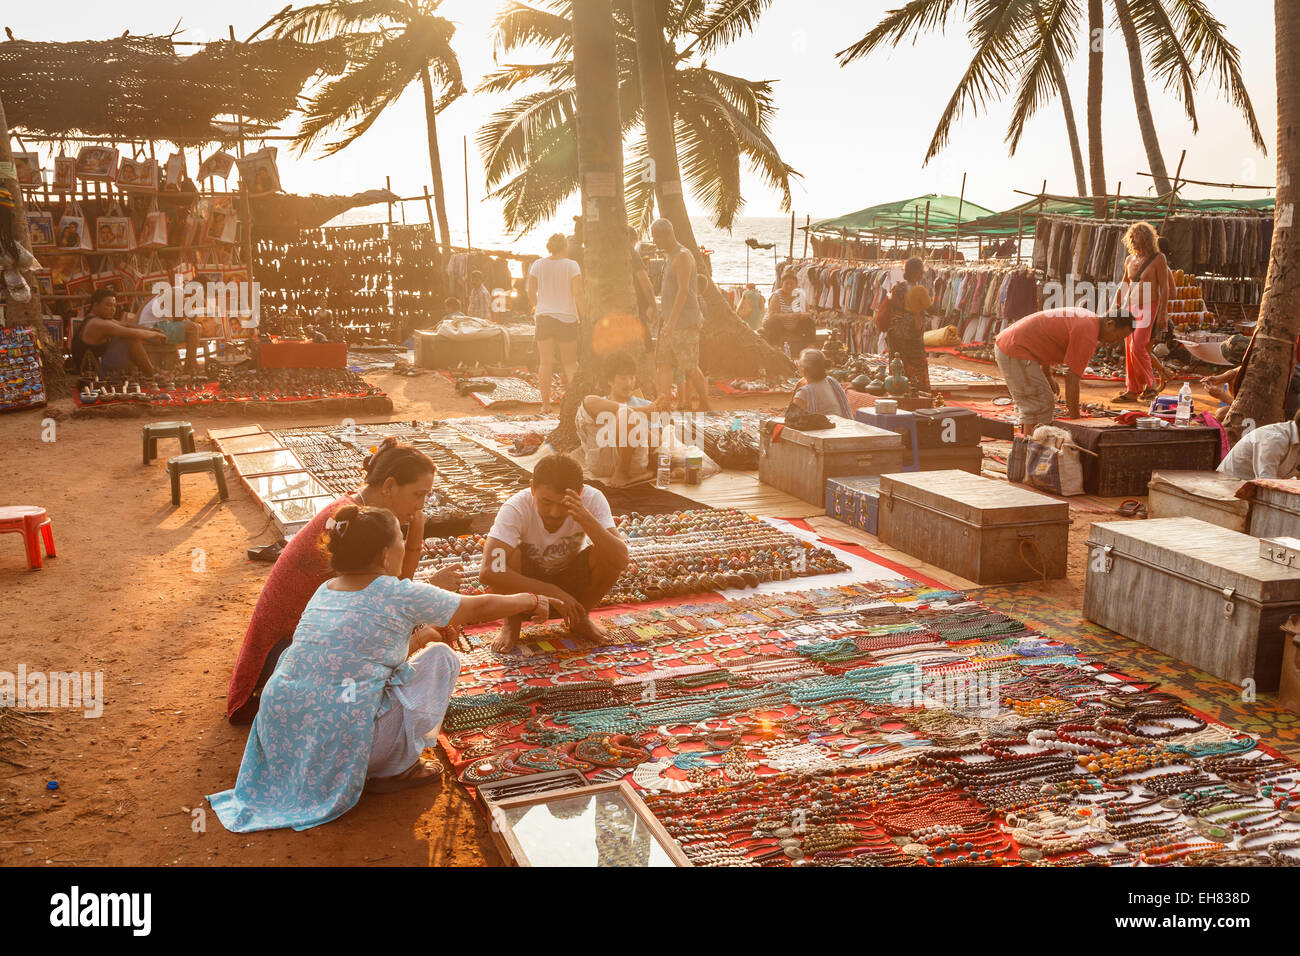 Tibetan selling their craft at the Wednesday Flea Market in Anjuna, Goa, India, Asia - Stock Image